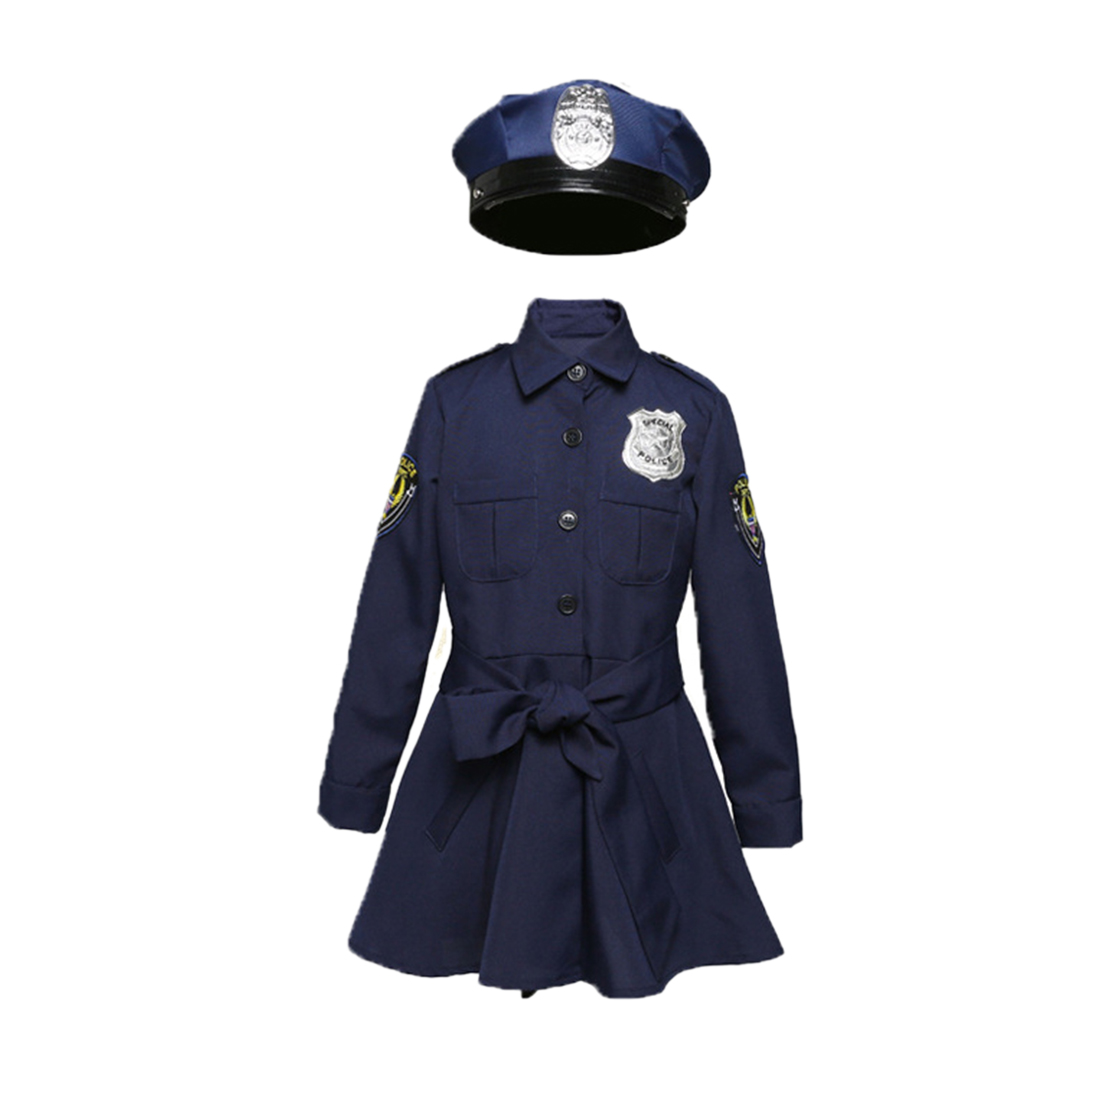 3Pcs Pretend Play Cute <font><b>Police</b></font> Dressup Set Policewoman Costume For 130cm-145cm/120cm-130cm/110cm-120cm/90cm-110cm Kids - L M S XS image